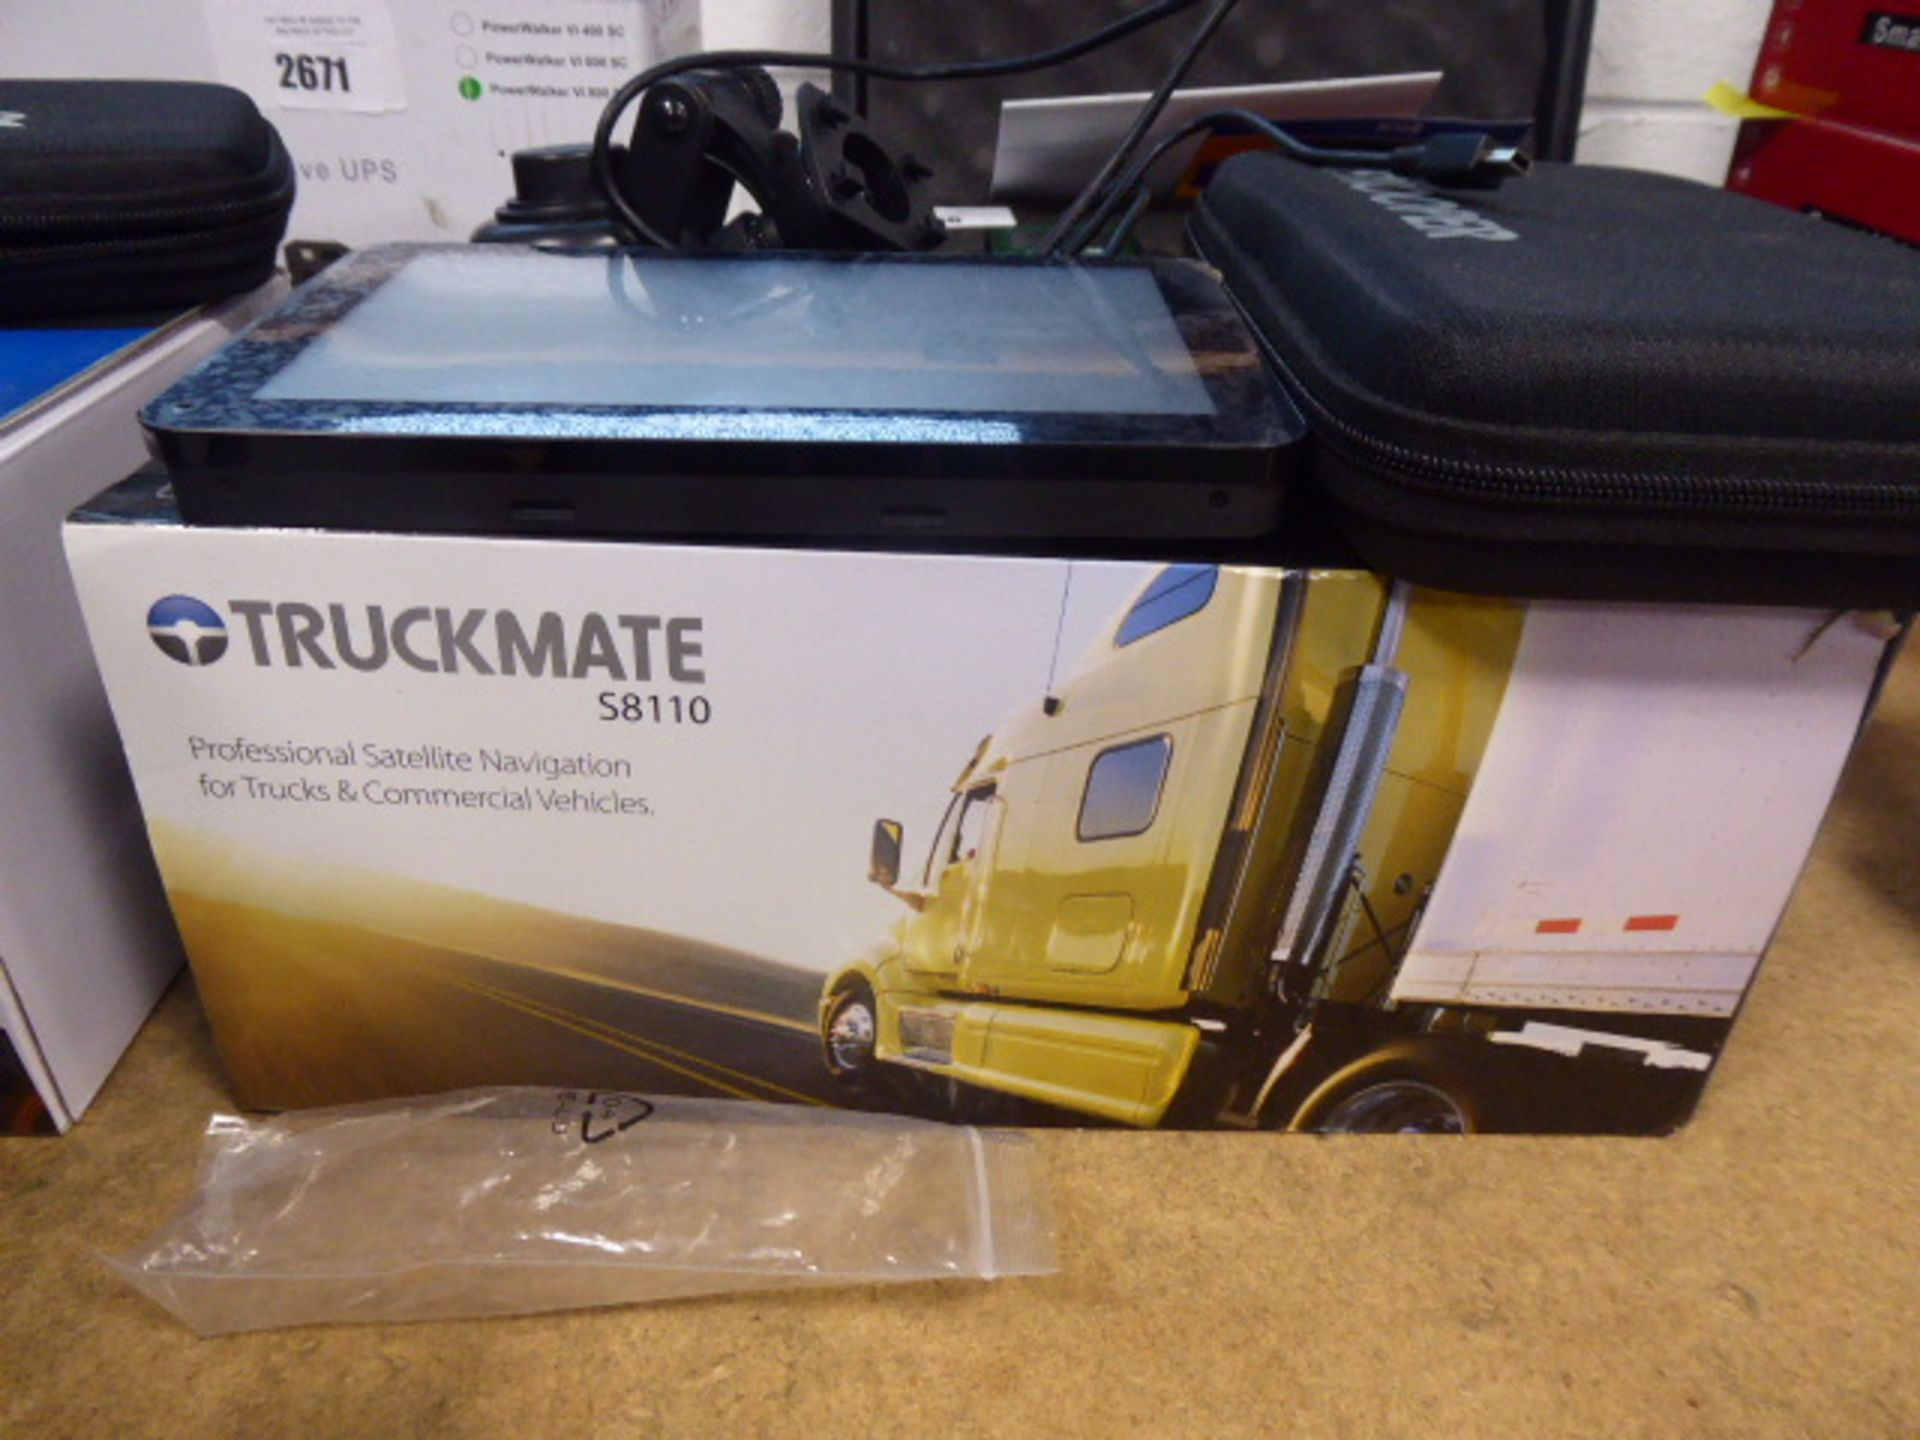 Snooper truckmate S8110 sat nav system with box - Image 2 of 3